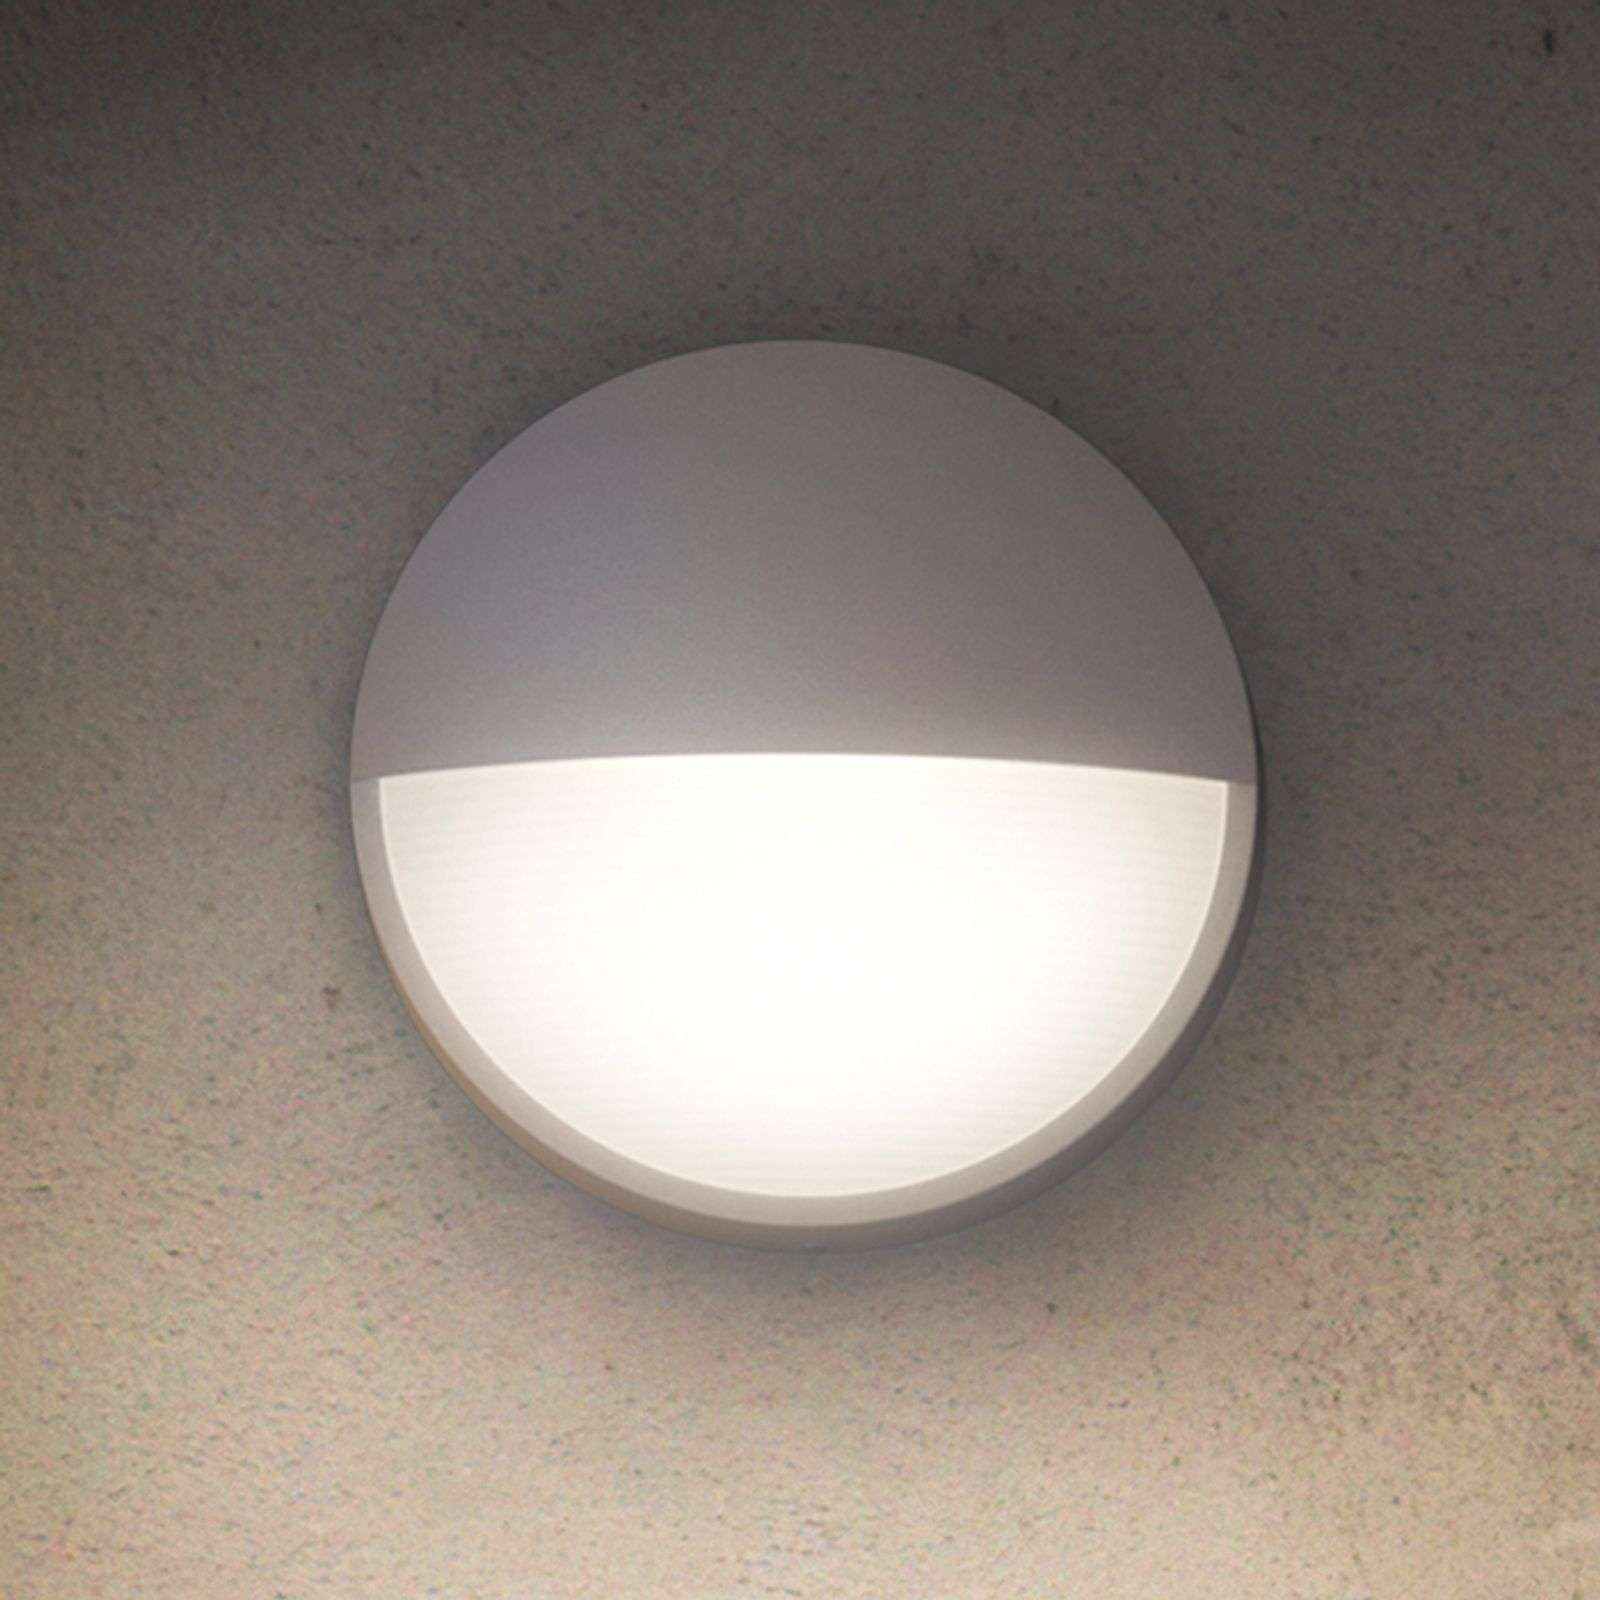 Ronde outdoor wandlamp Capricorn met LED licht